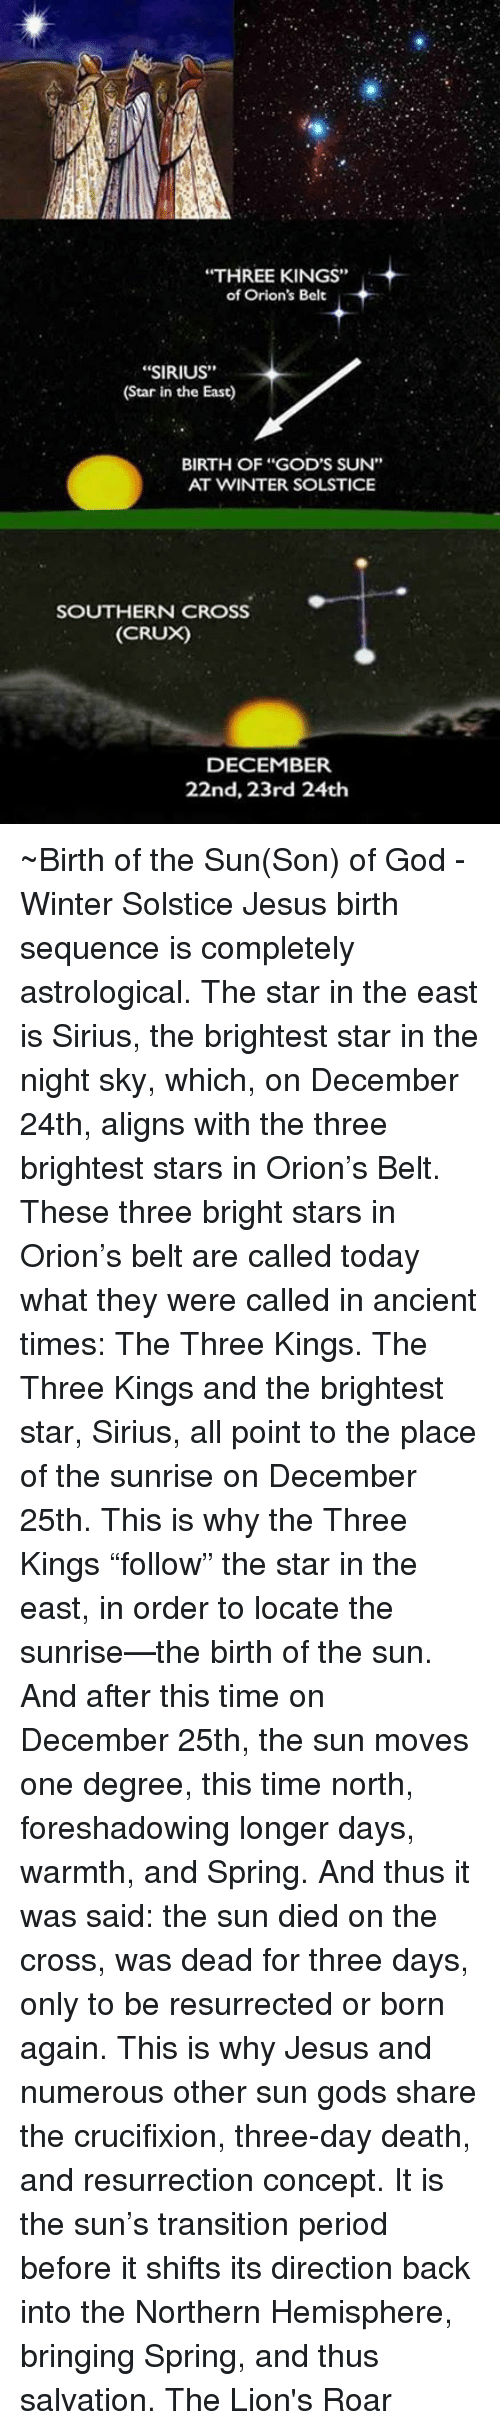 """lion roar: """"THREE KINGS""""  of Orion's Belt  """"SIRIUS""""  (Star in the East)  BIRTH OF """"GOD'S SUN""""  AT WINTER SOLSTICE  SOUTHERN CROSS  (CRUX)  DECEMBER  22nd, 23rd 24th ~Birth of the Sun(Son) of God - Winter Solstice  Jesus birth sequence is completely astrological. The star in the east is Sirius, the brightest star in the night sky, which, on December 24th, aligns with the three brightest stars in Orion's Belt. These three bright stars in Orion's belt are called today what they were called in ancient times: The Three Kings. The Three Kings and the brightest star, Sirius, all point to the place of the sunrise on December 25th. This is why the Three Kings """"follow"""" the star in the east, in order to locate the sunrise—the birth of the sun. And after this time on December 25th, the sun moves one degree, this time north, foreshadowing longer days, warmth, and Spring. And thus it was said: the sun died on the cross, was dead for three days, only to be resurrected or born again. This is why Jesus and numerous other sun gods share the crucifixion, three-day death, and resurrection concept. It is the sun's transition period before it shifts its direction back into the Northern Hemisphere, bringing Spring, and thus salvation.  The Lion's Roar"""